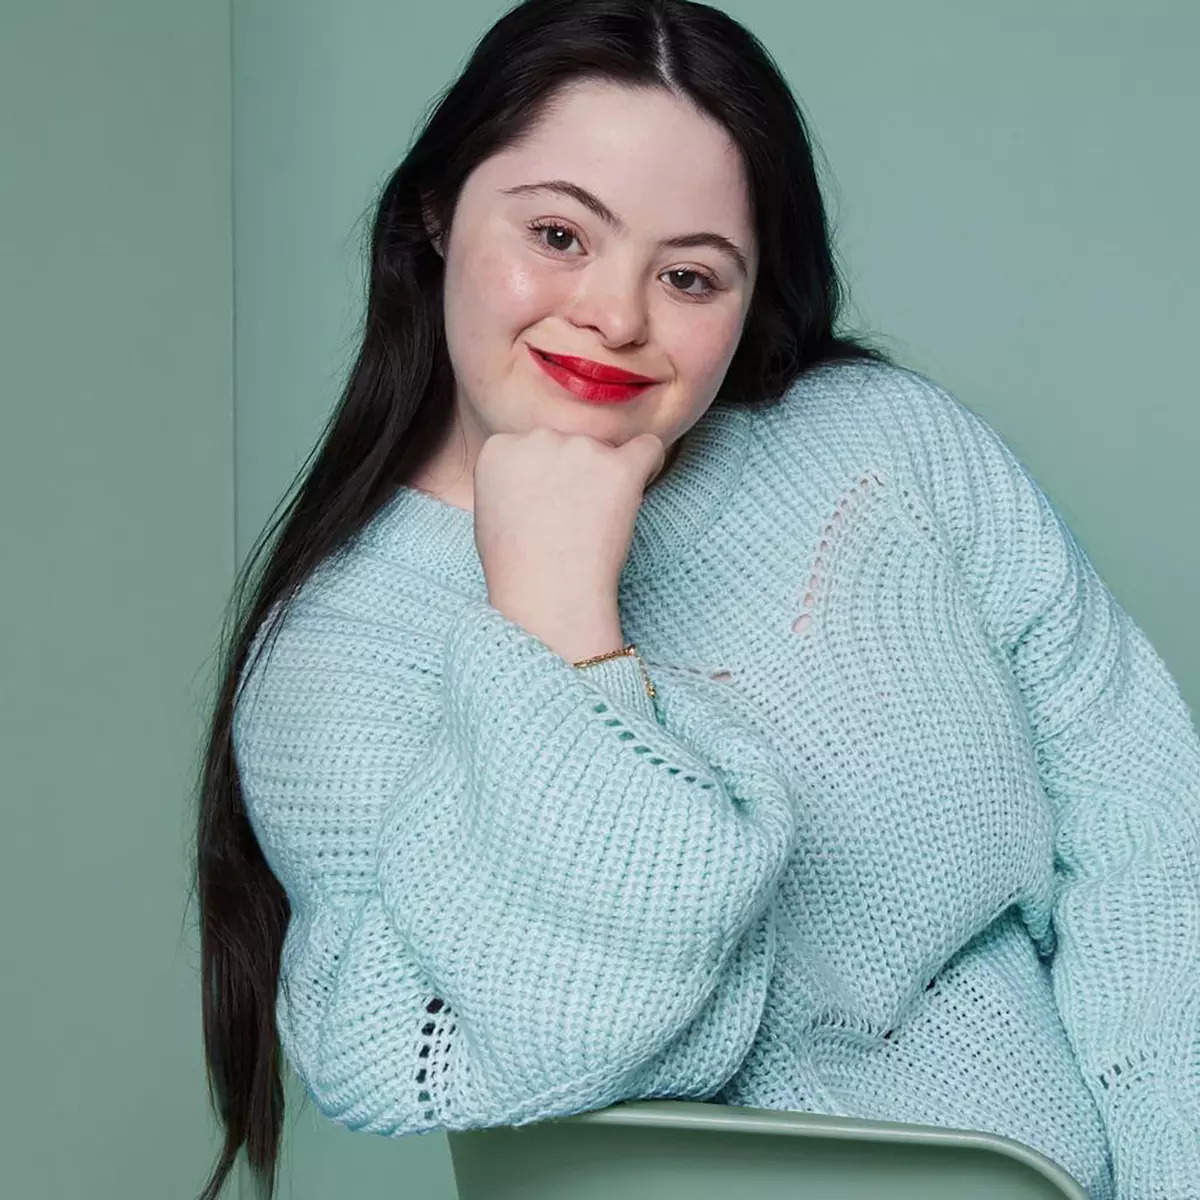 First Down's syndrome model Ellie Goldstein who campaigned for Gucci